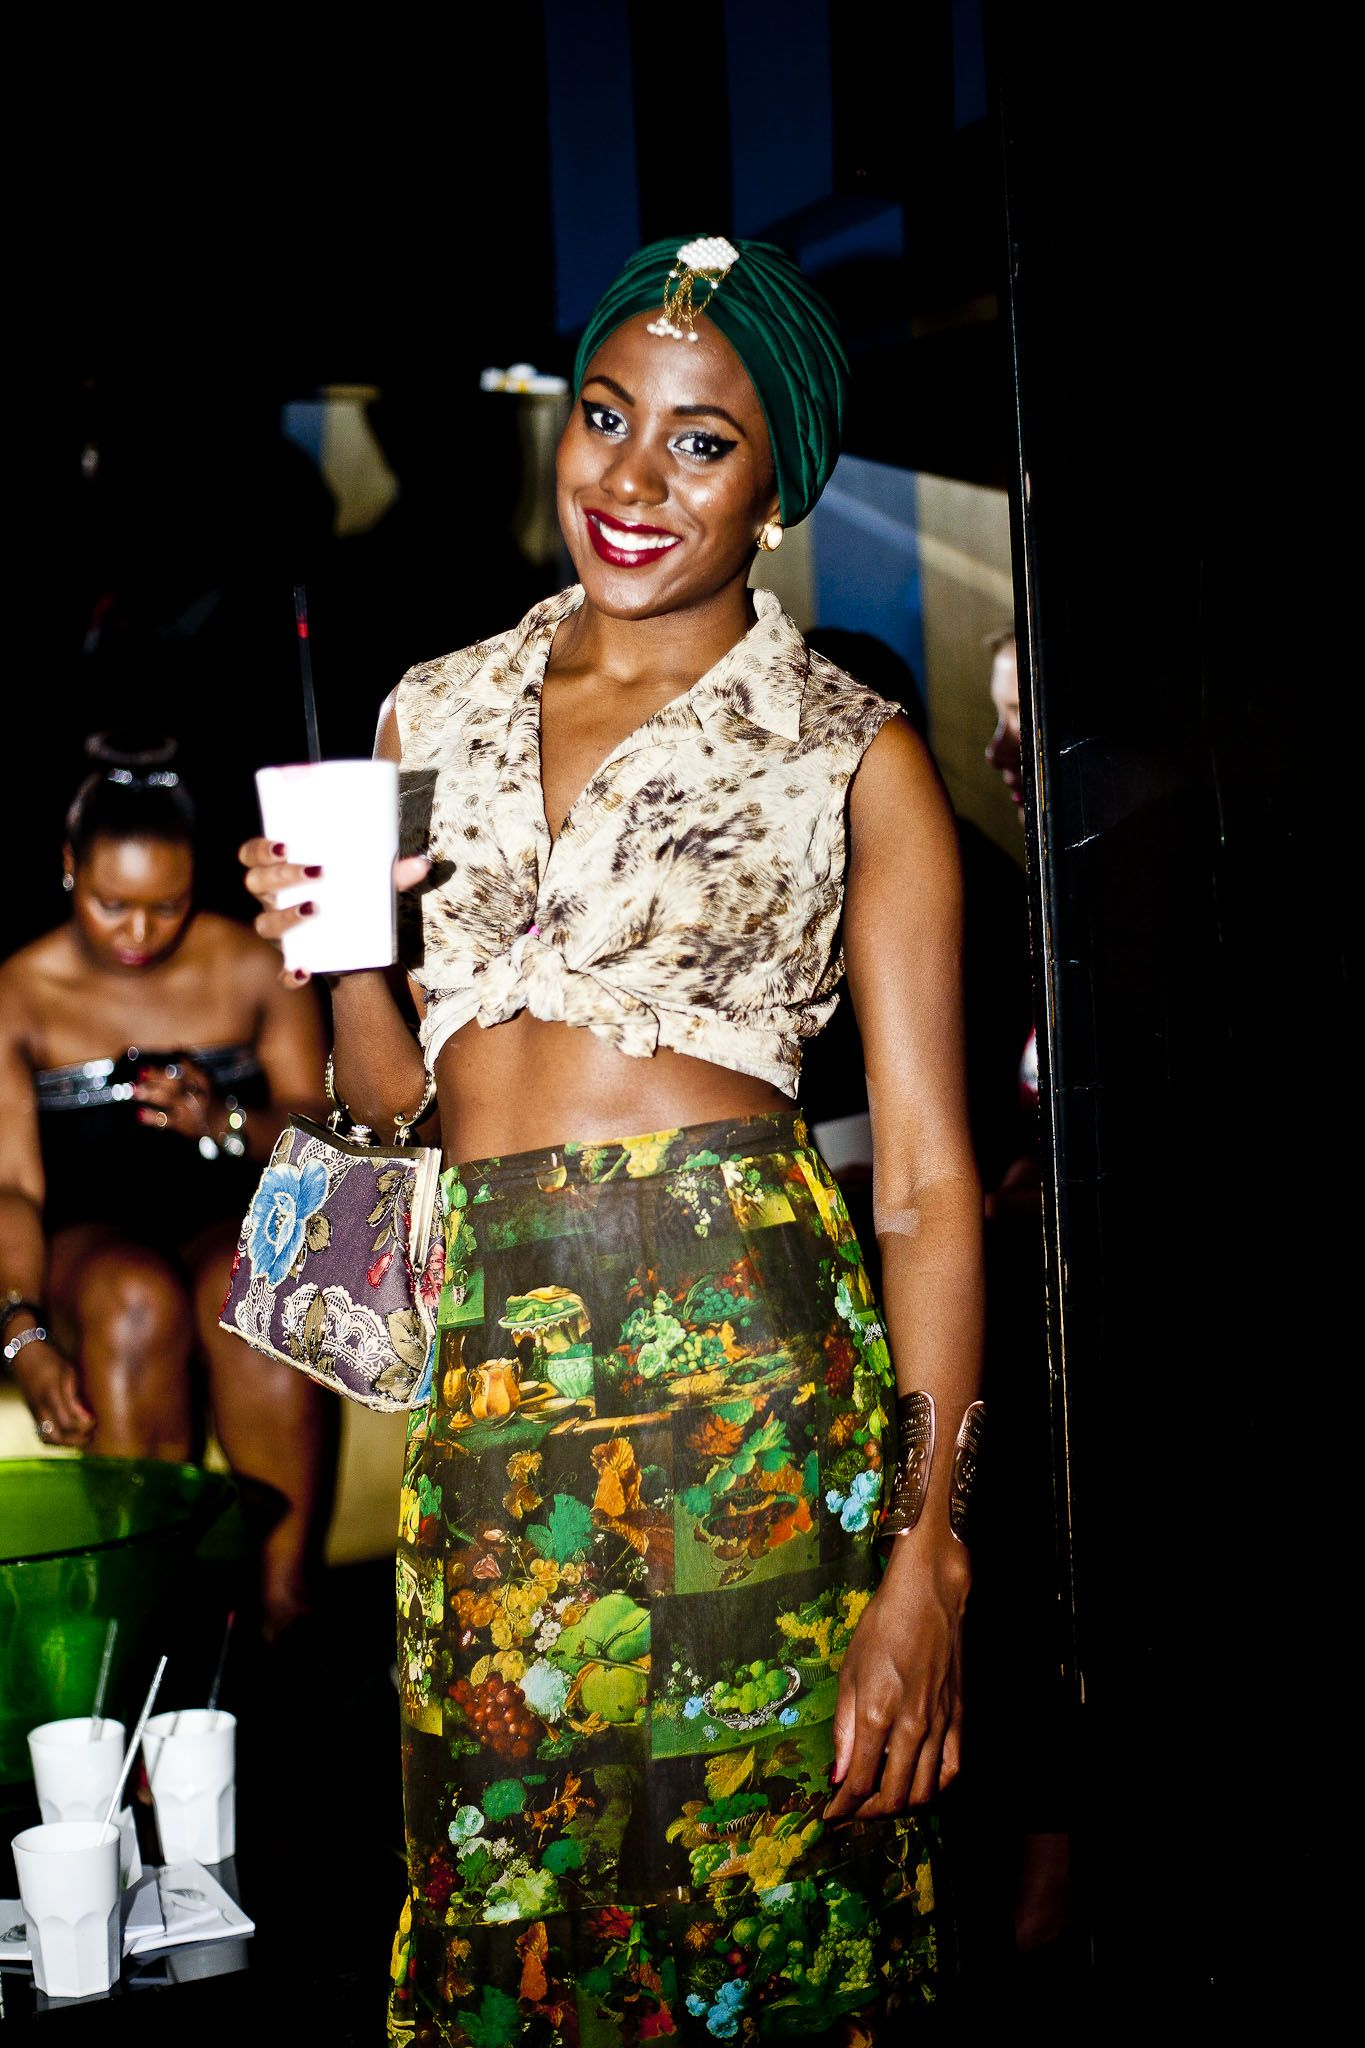 #Natalie May at #interntostylist launch #party at #whiskymist